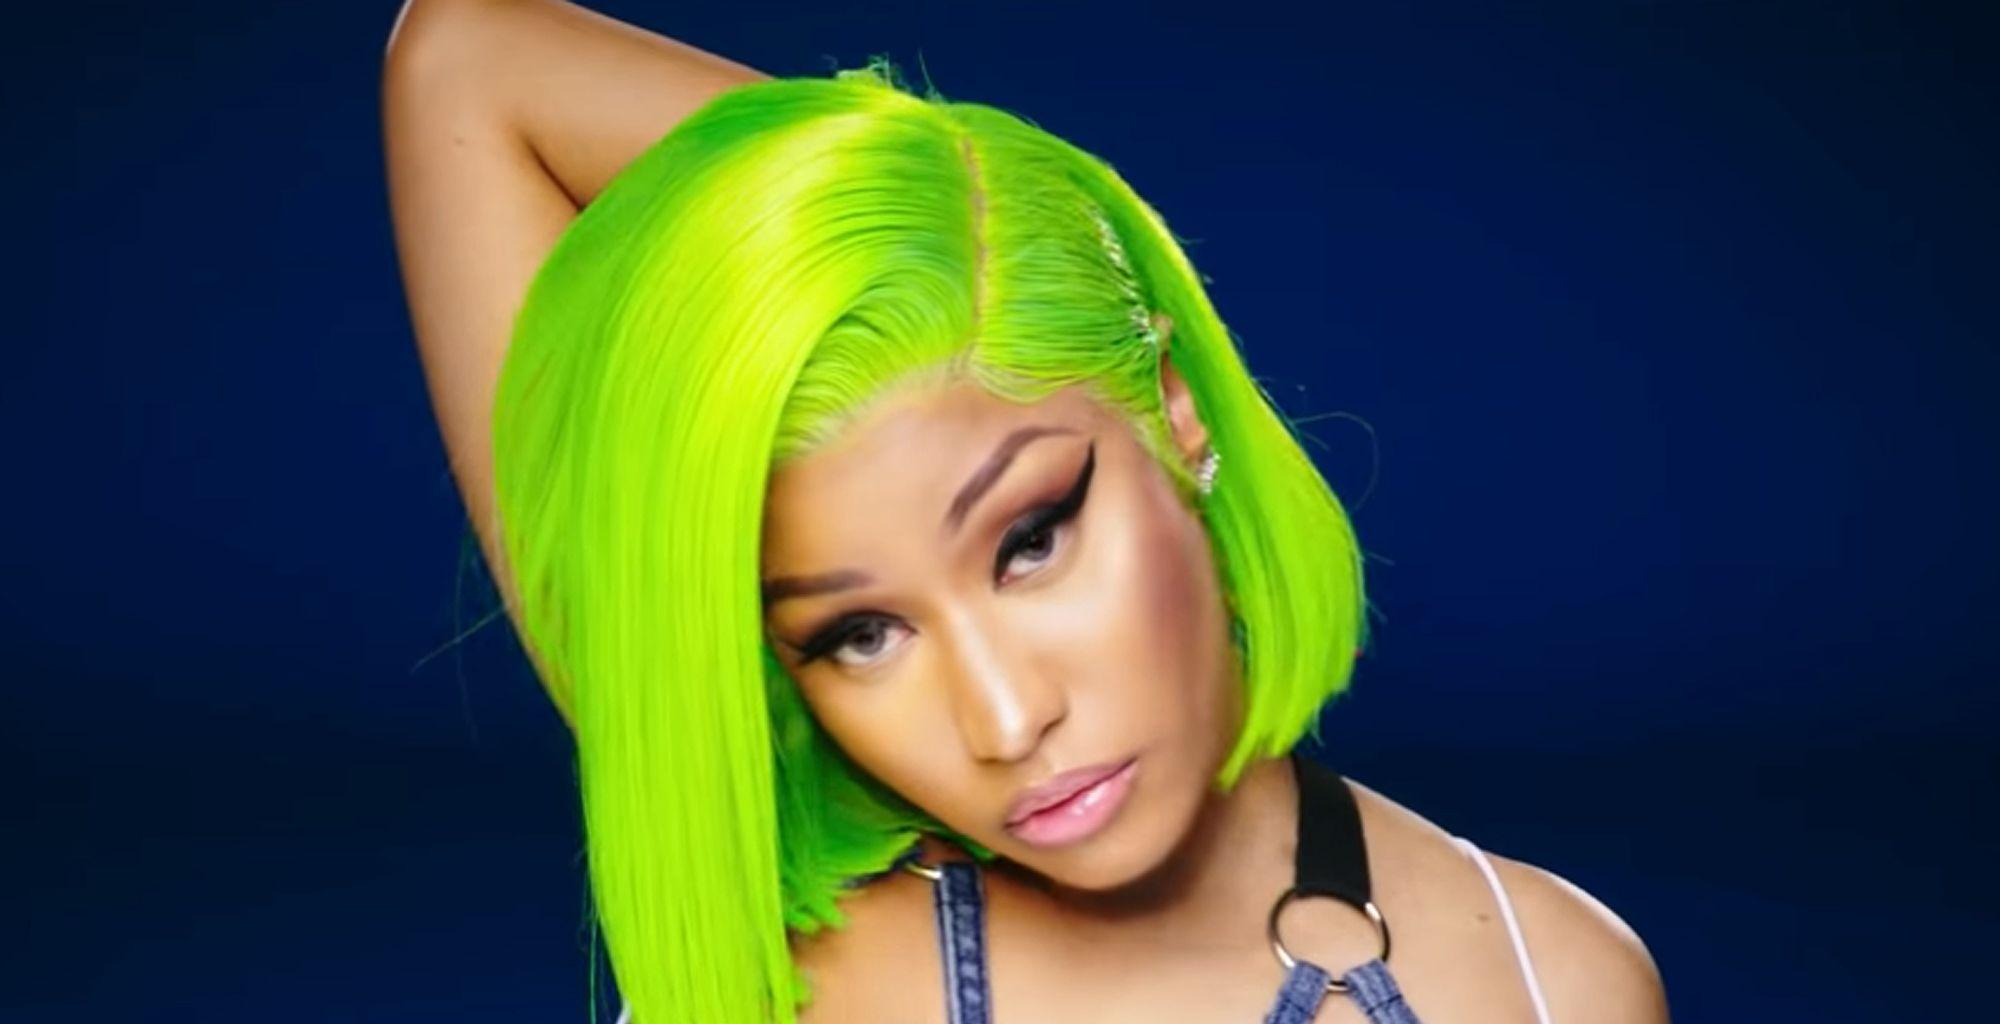 Nicki Minaj Is Spending Time In The Studio And Continues Posting Jaw-Dropping Looks